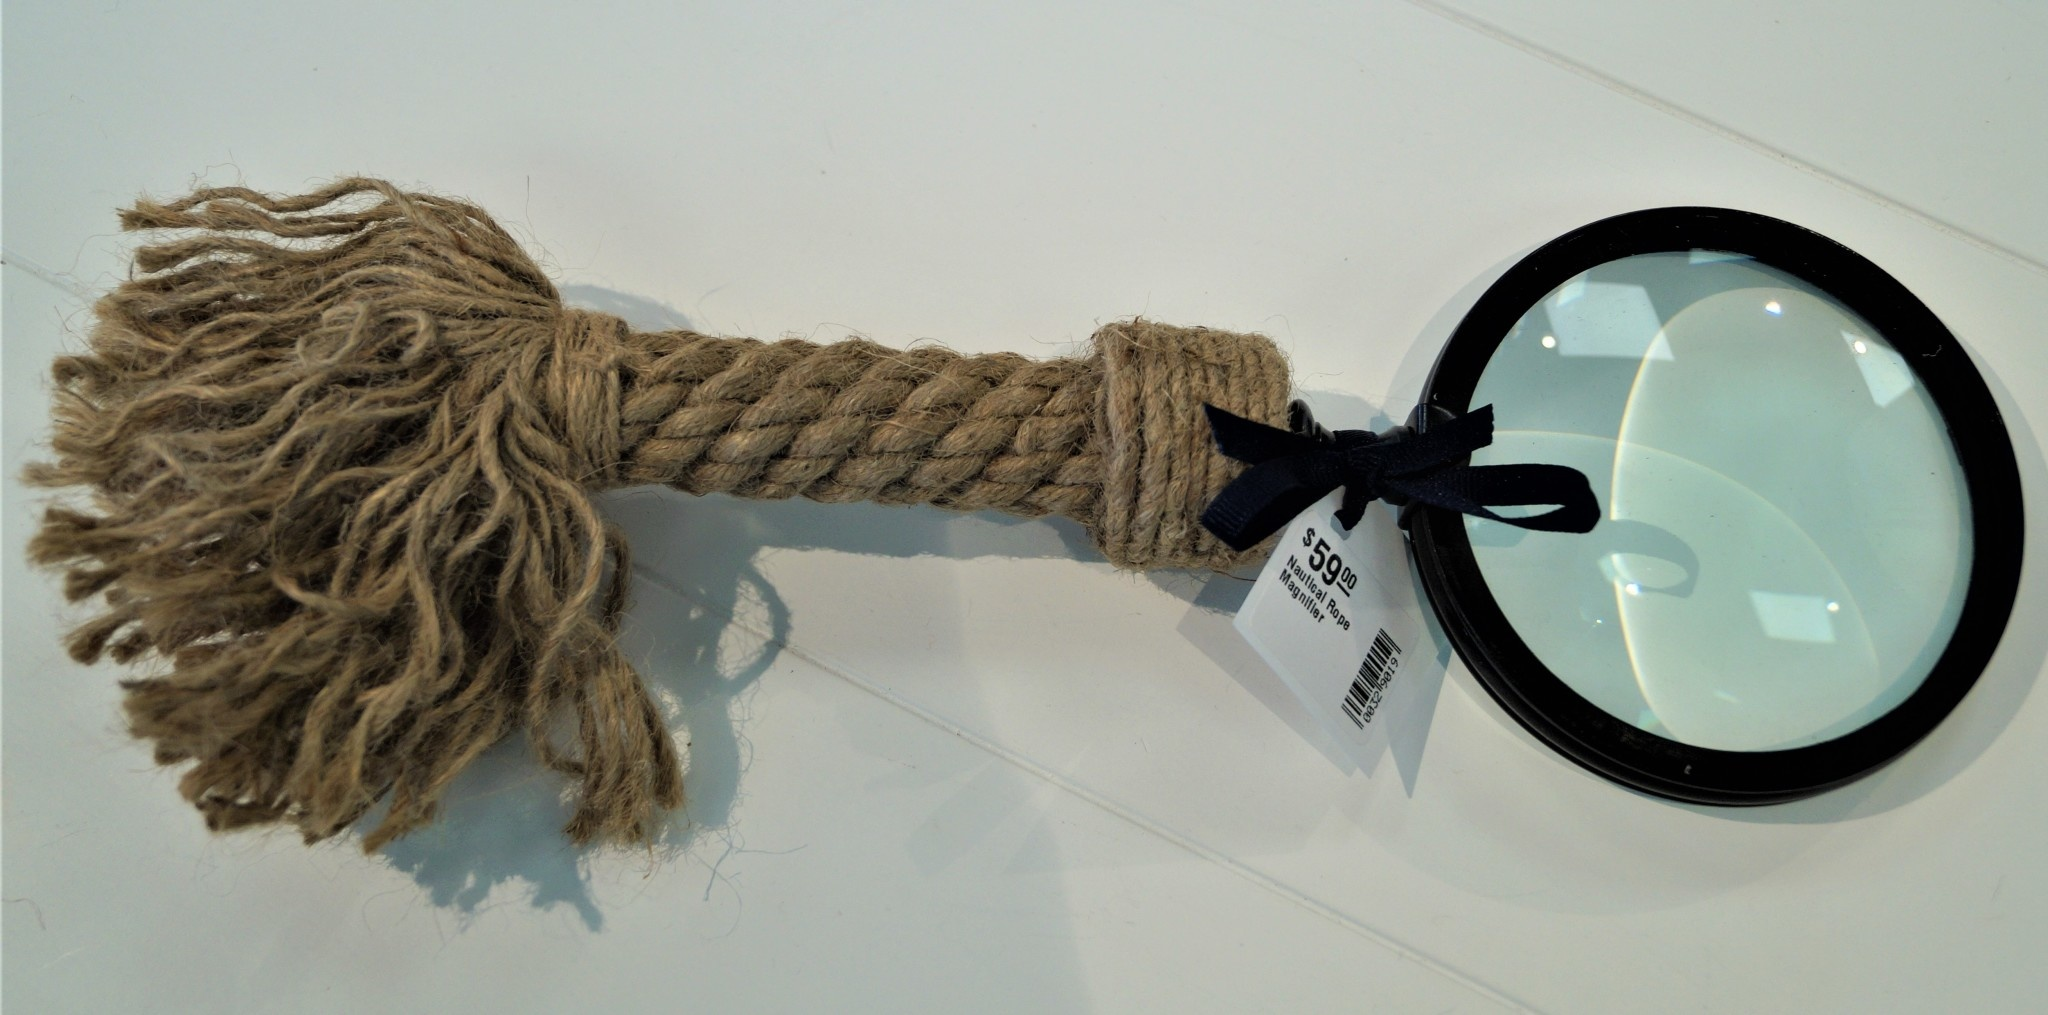 Nautical Rope Magnifier